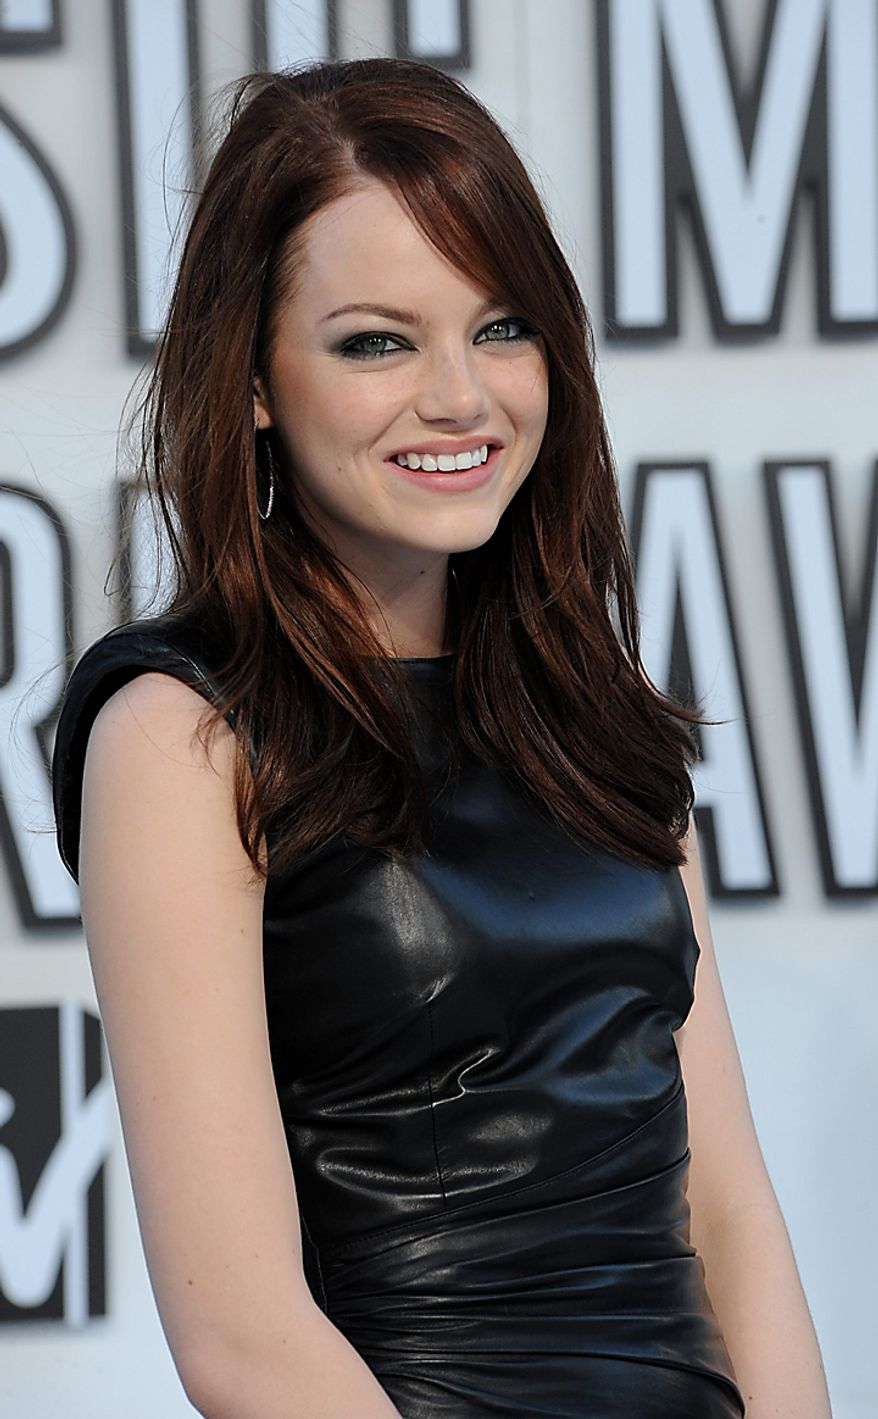 Actress Emma Stone arrives at the MTV Video Music Awards in Los Angeles on September 12, 2010 in Los Angeles.  UPI/Jim Ruymen